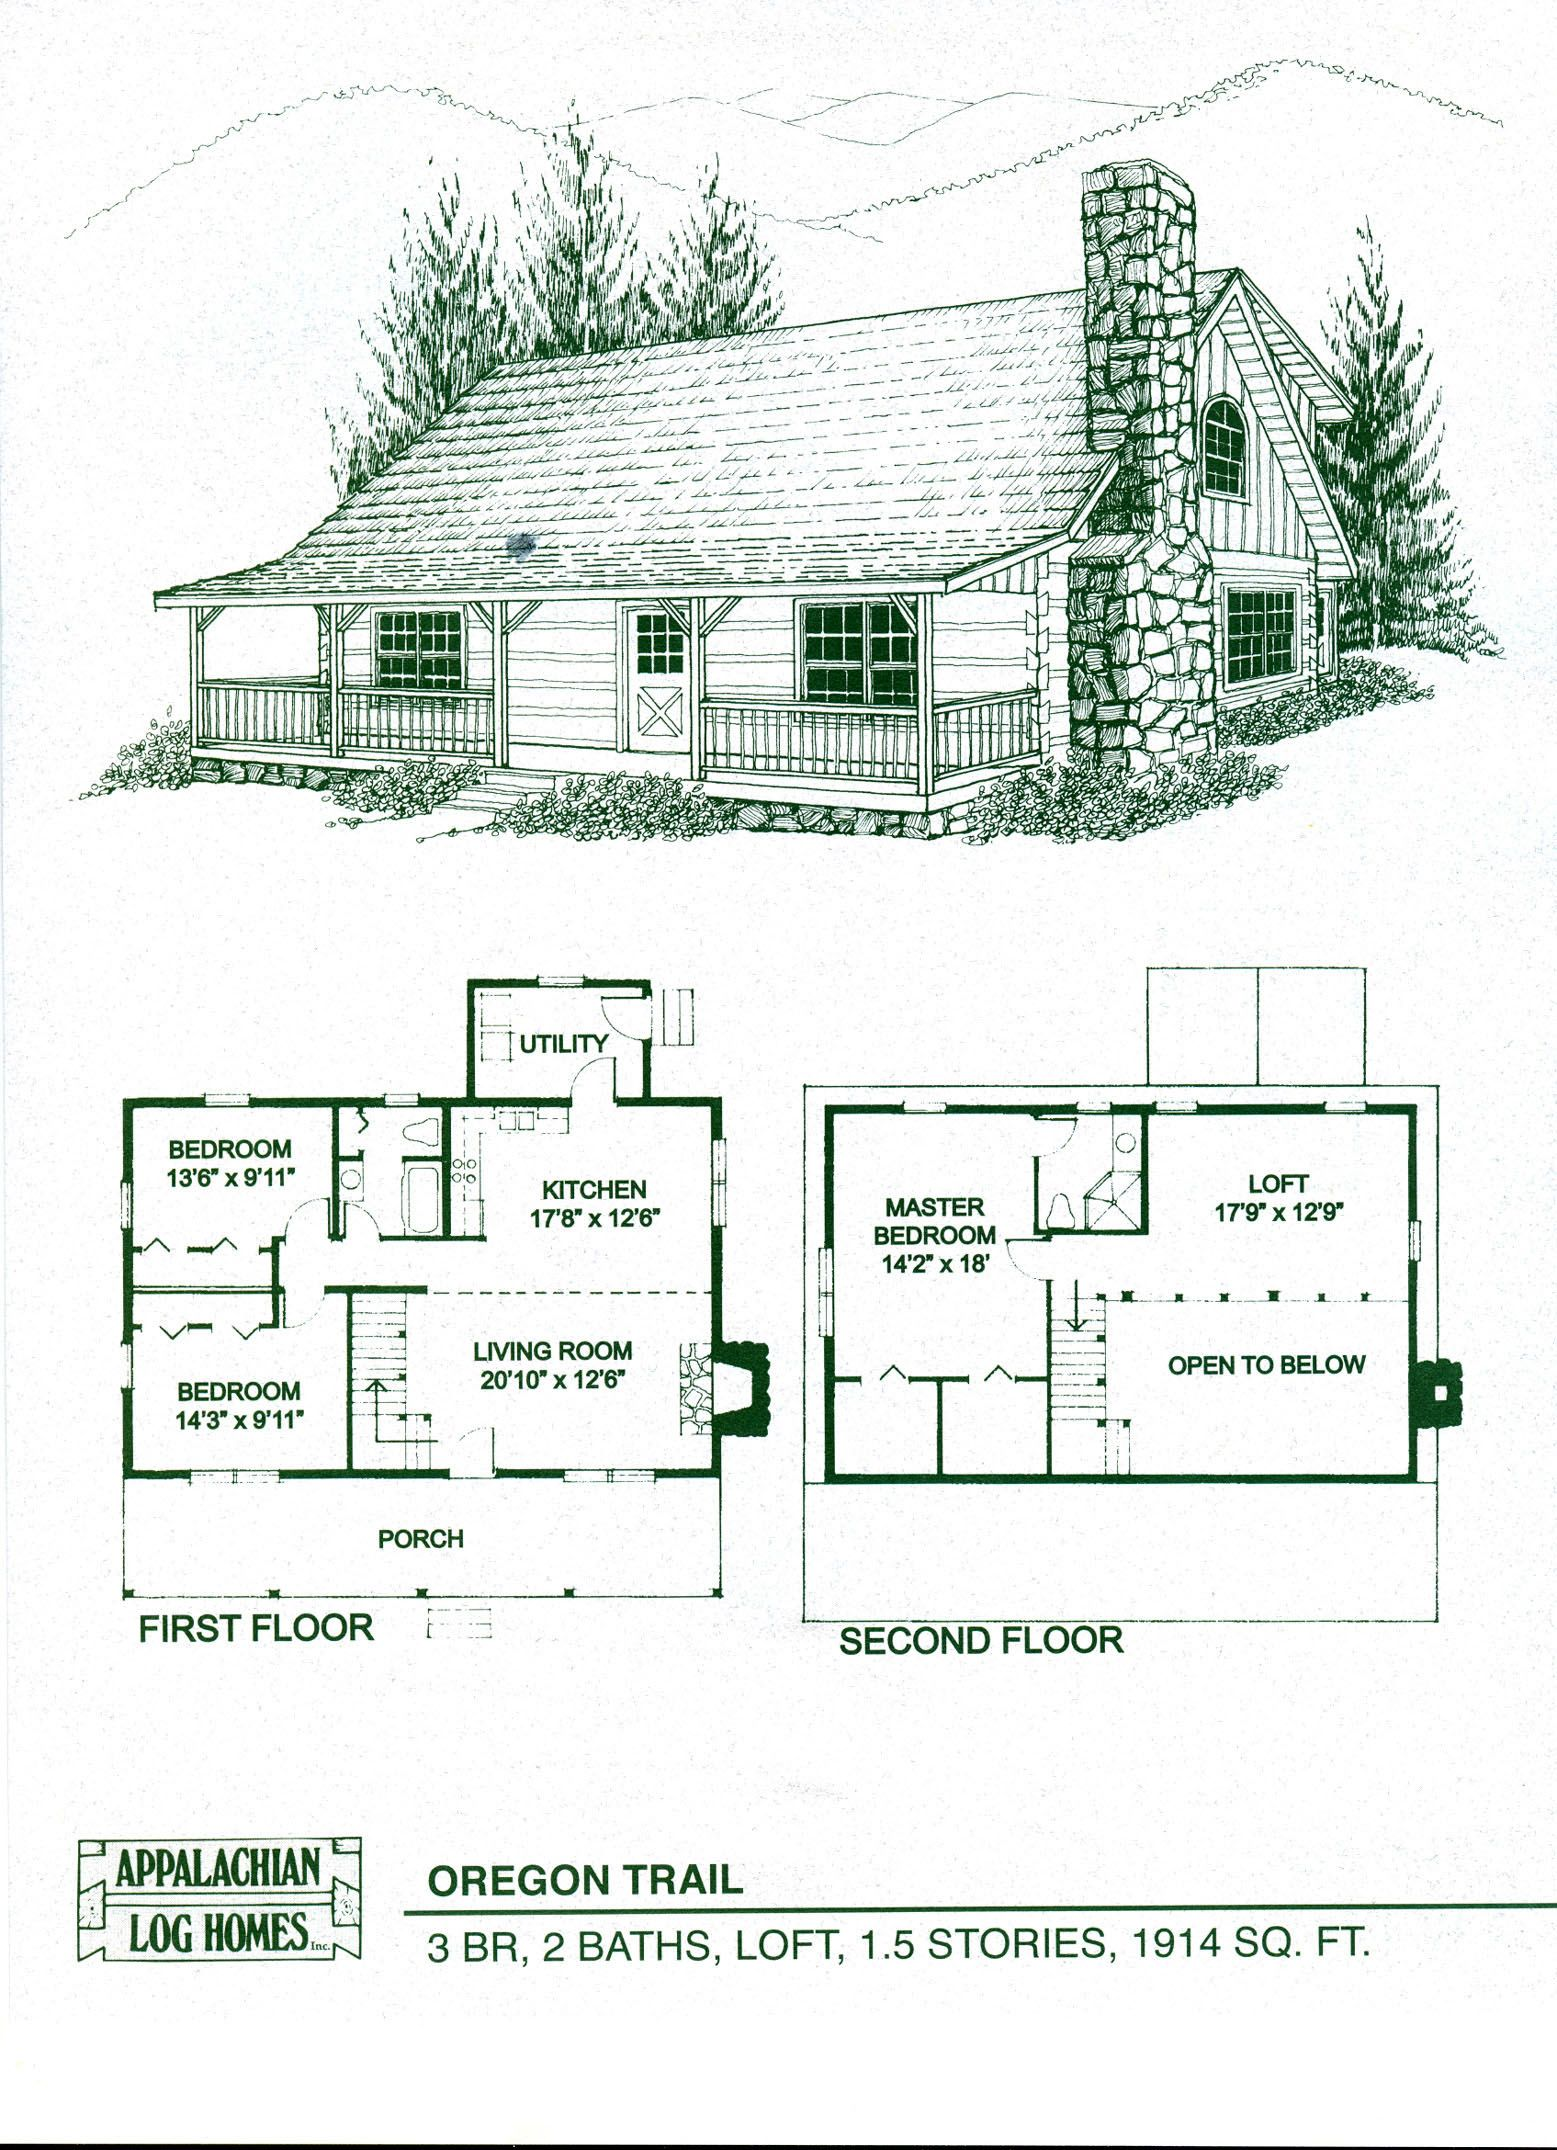 Log Home Floor Plans Log Cabin Kits Appalachian Log Homes Cottage Floor Plans Cabin House Plans Log Cabin Floor Plans